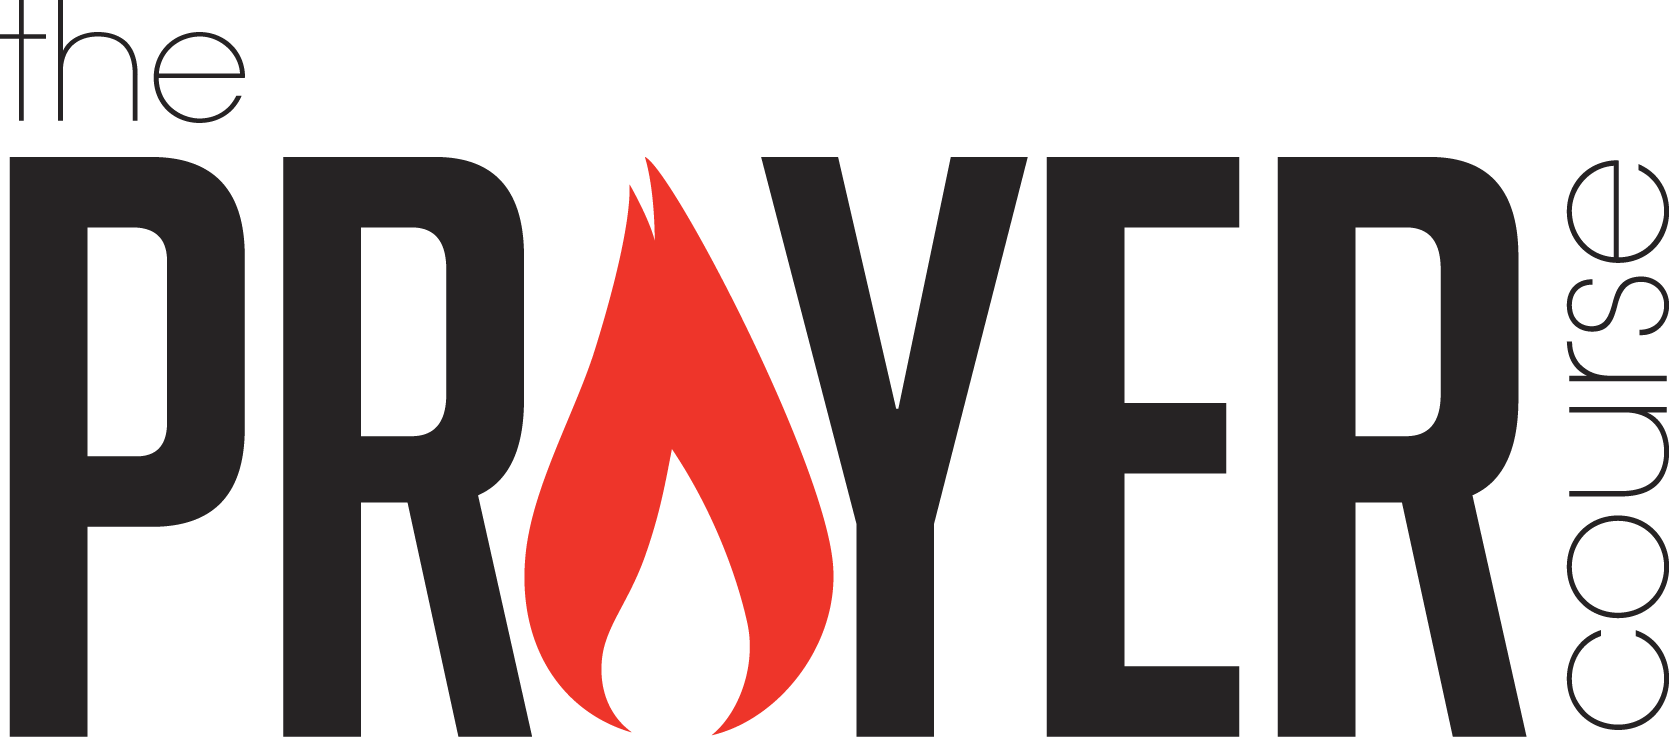 The_Prayer_Course_Logo.png